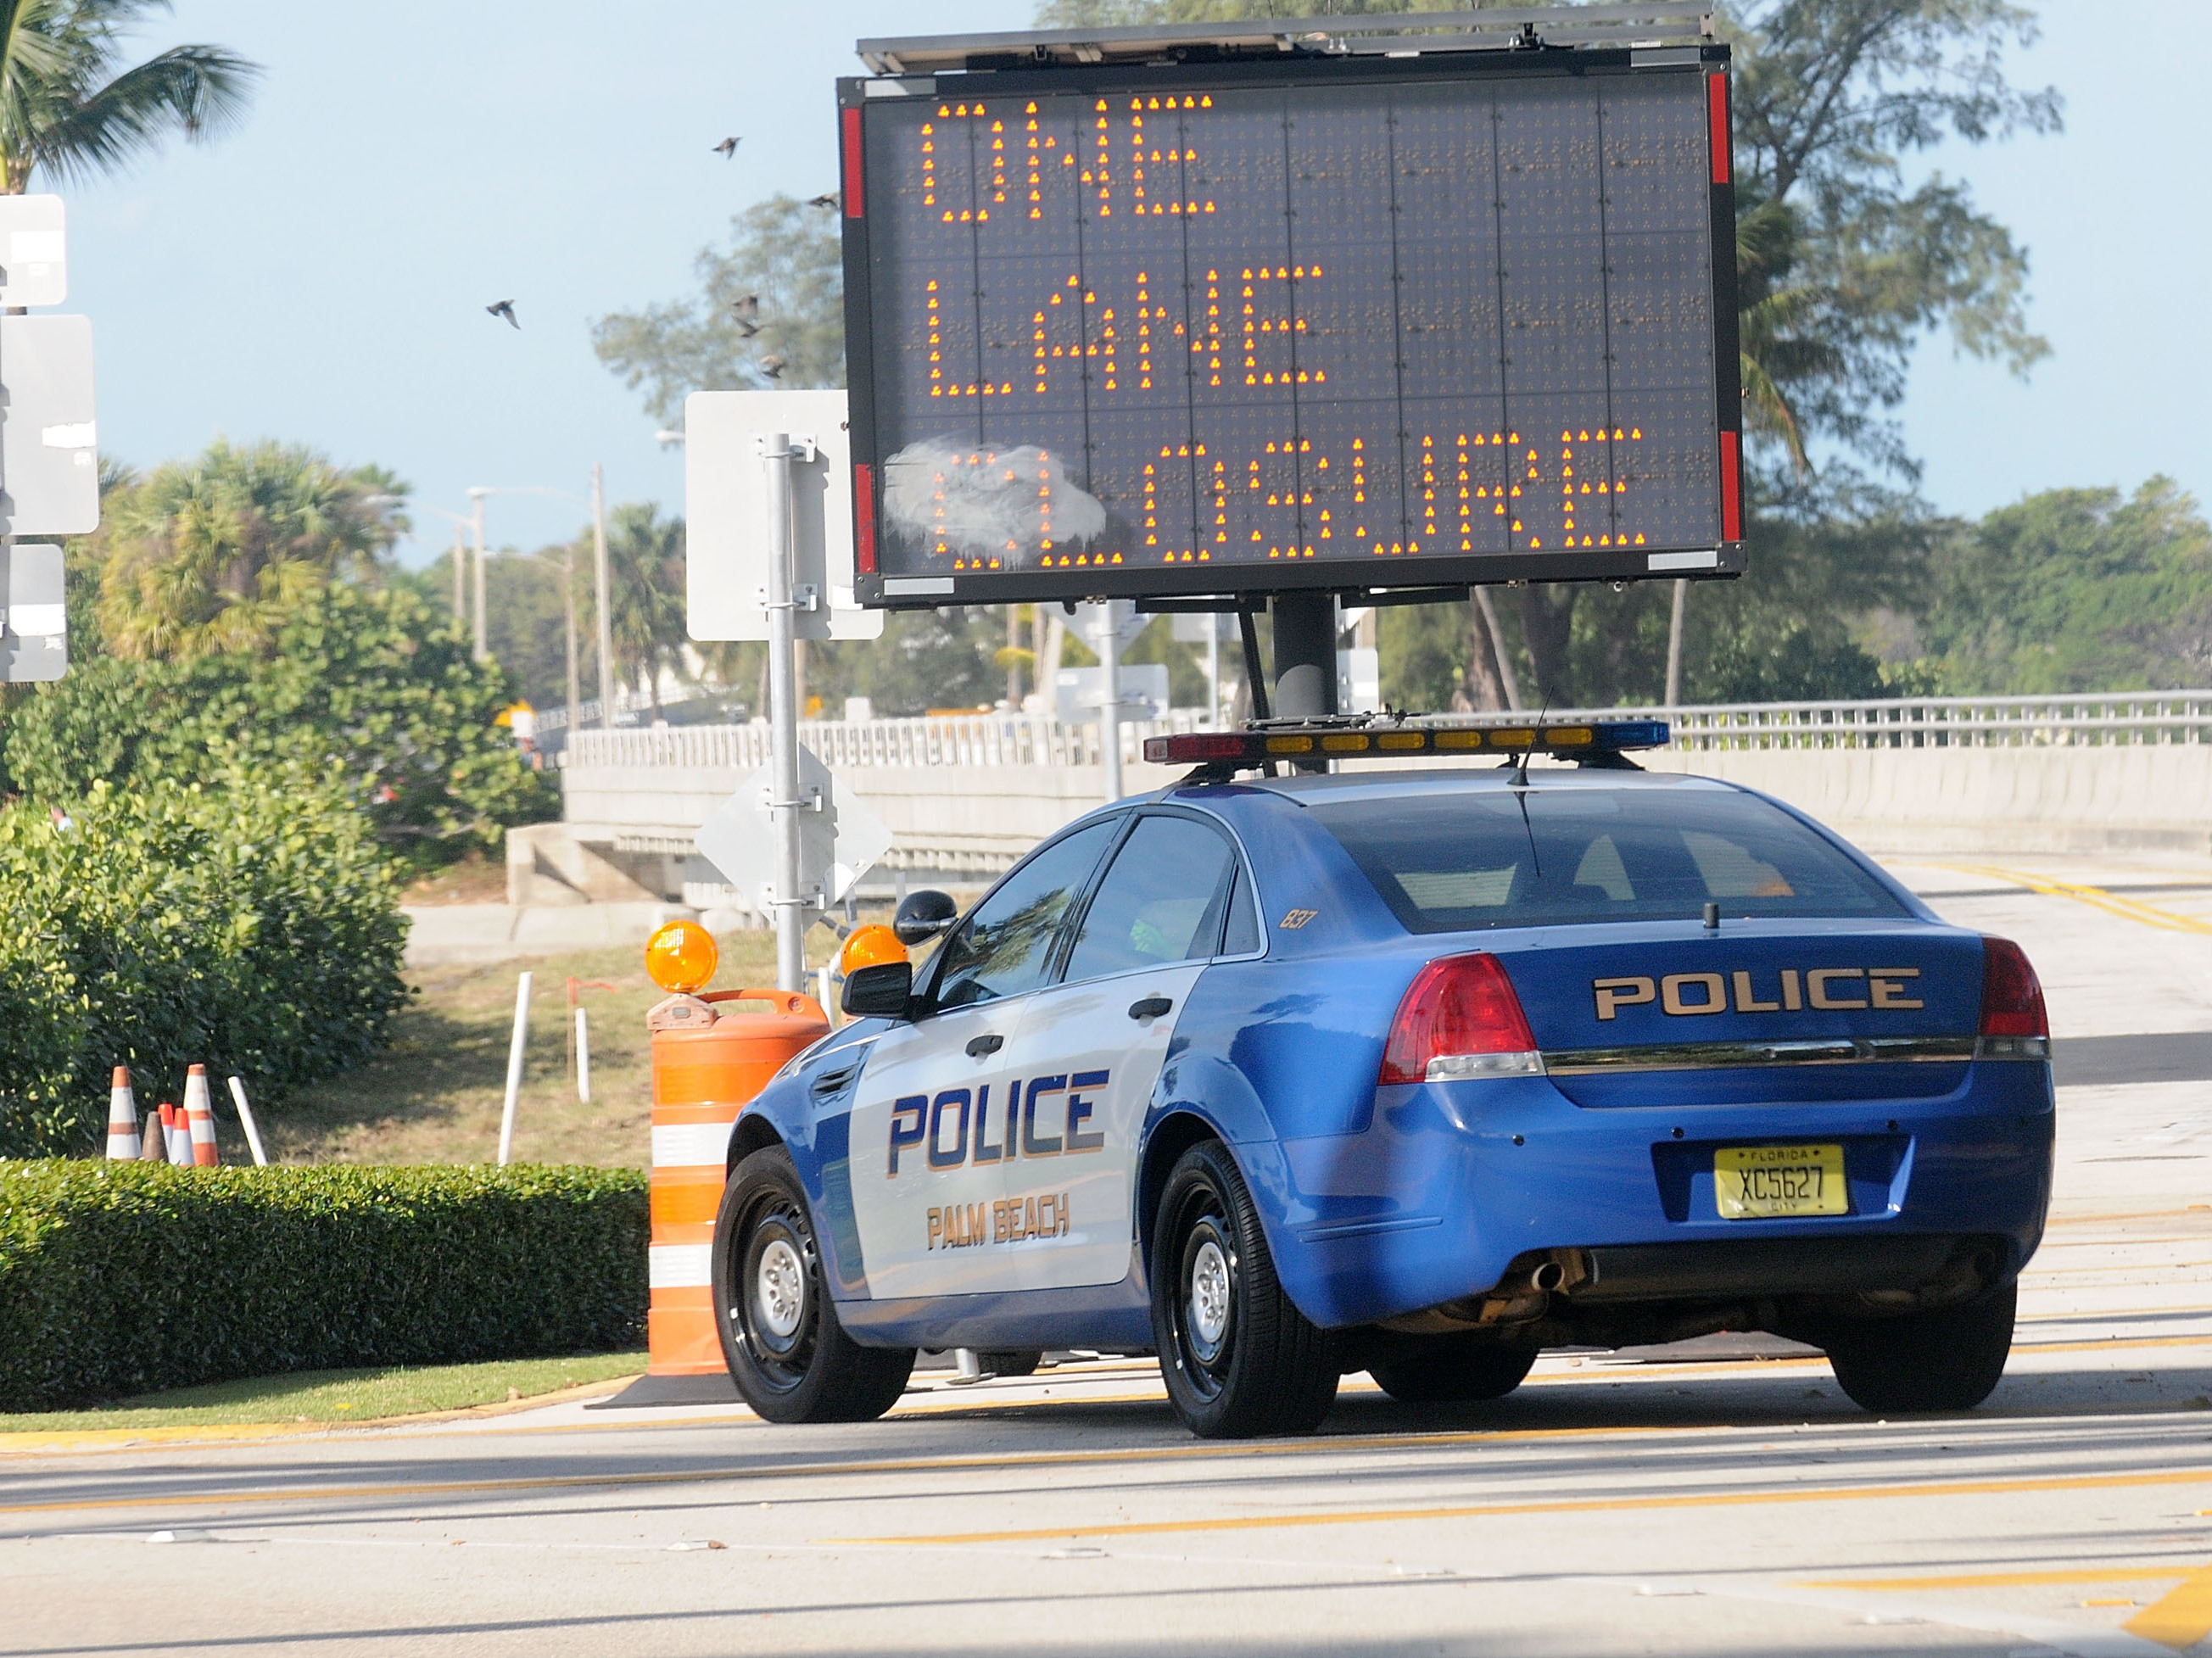 A Palm Beach Police car sits in front of a gate of the Mar-a-Lago Resort in November. During President Trump's frequent visits, the Secret Service shuts down a major thoroughfare, making it difficult to get anywhere in Palm Beach.Jorge Gonzalez, whose planes tow advertising banners, says the flight restrictions in place while President Trump is at Mar-a-Lago may put him out of business.A Palm Beach Police car sits in front of a gate of the Mar-a-Lago Resort in November. During President Trump's frequent visits, the Secret Service shuts down a major thoroughfare, making it difficult to get anywhere in Palm Beach.Jorge Gonzalez, whose planes tow advertising banners, says the flight restrictions in place while President Trump is at Mar-a-Lago may put him out of business.